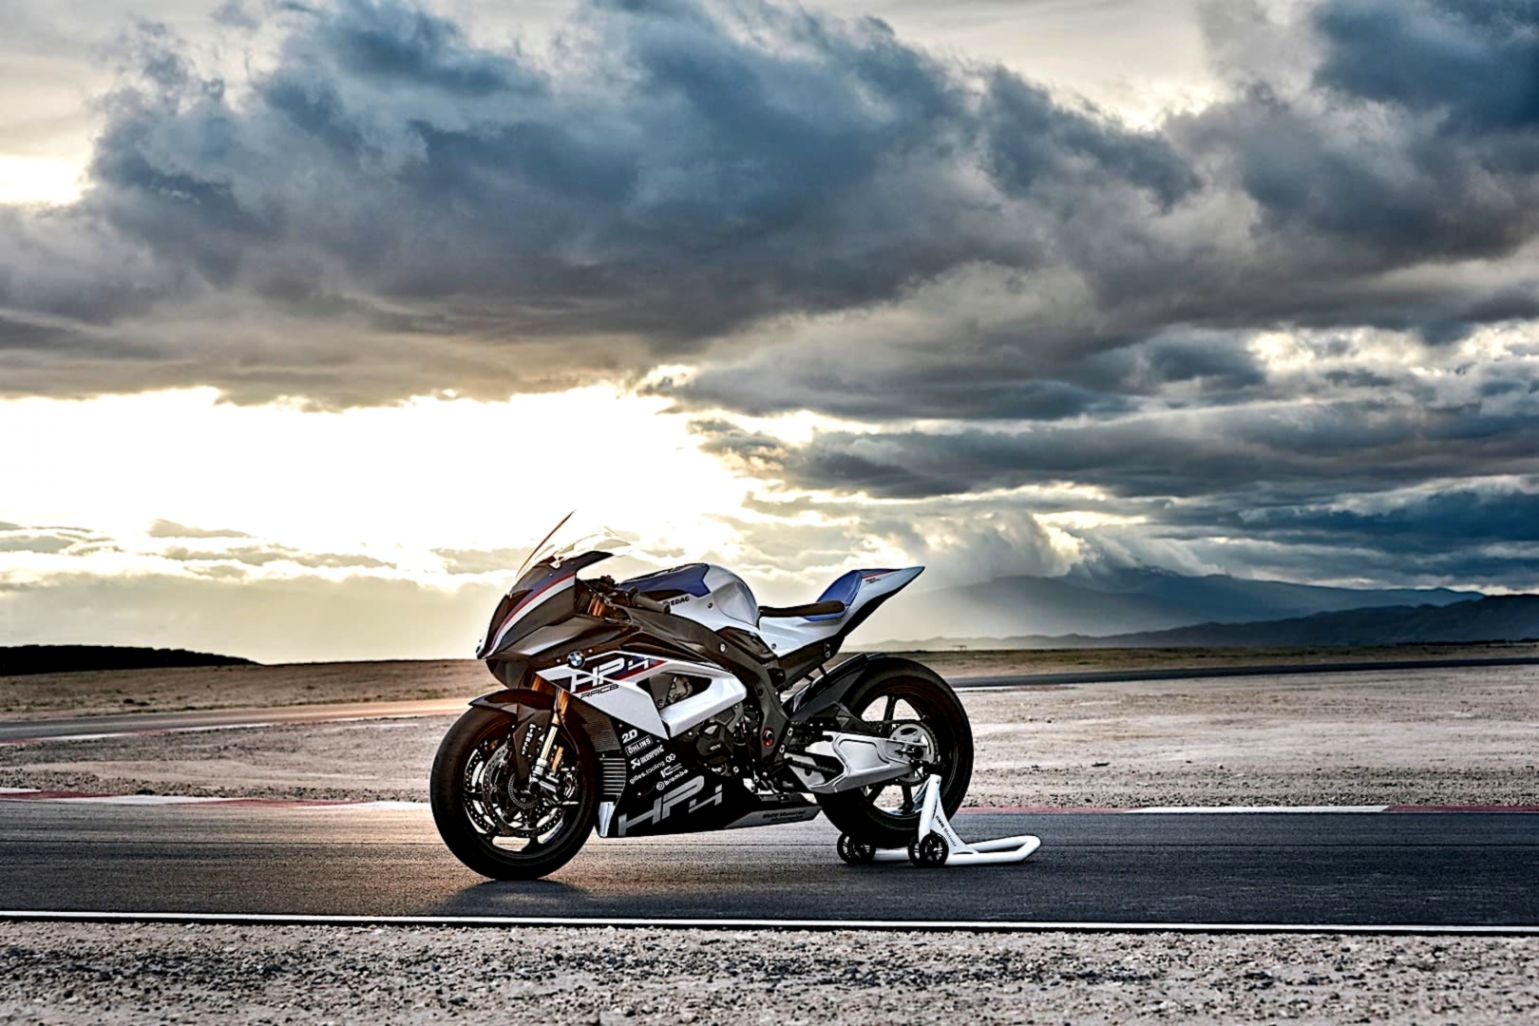 Motorcycle Bmw Hp4 Hd Wallpaper Wallpapers Screen 1539x1026